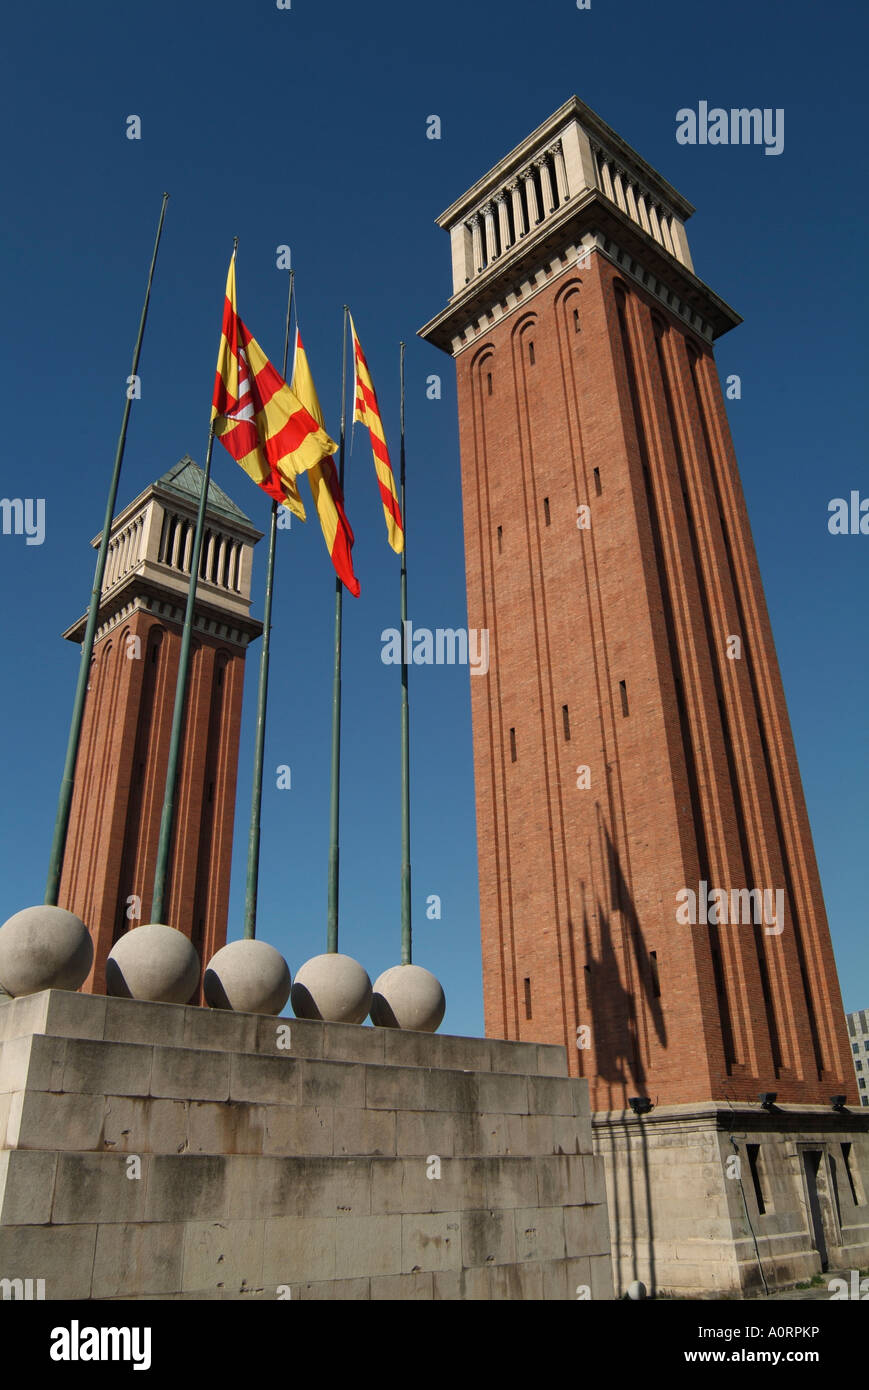 Placa Espanol Barcelona Catalonia Spain Europe - Stock Image